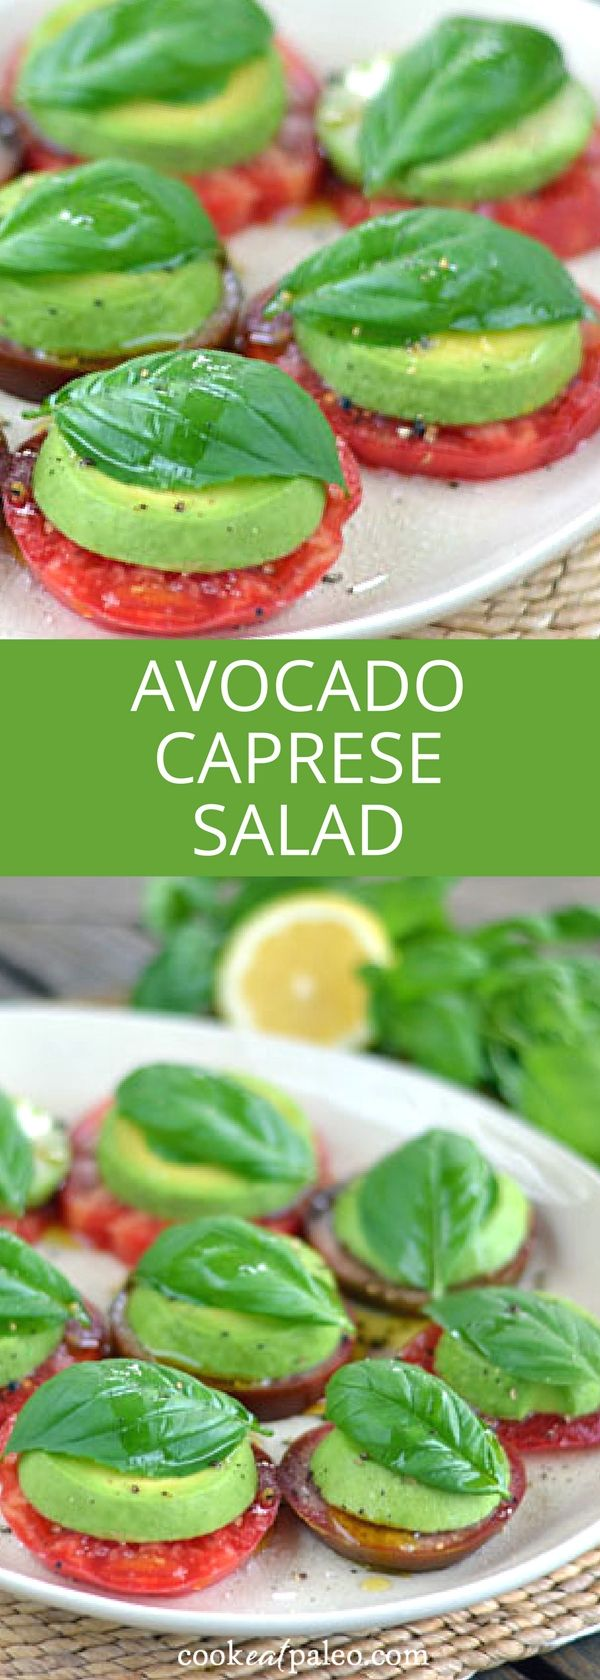 Avocado Caprese salad is a paleo take on a Caprese salad with tomatoes and basil fresh from the garden. Heirloom tomato avocado salad is the perfect appetizer or lunch. {gluten free, dairy free, vegan (Low Carb Dinner Soup)